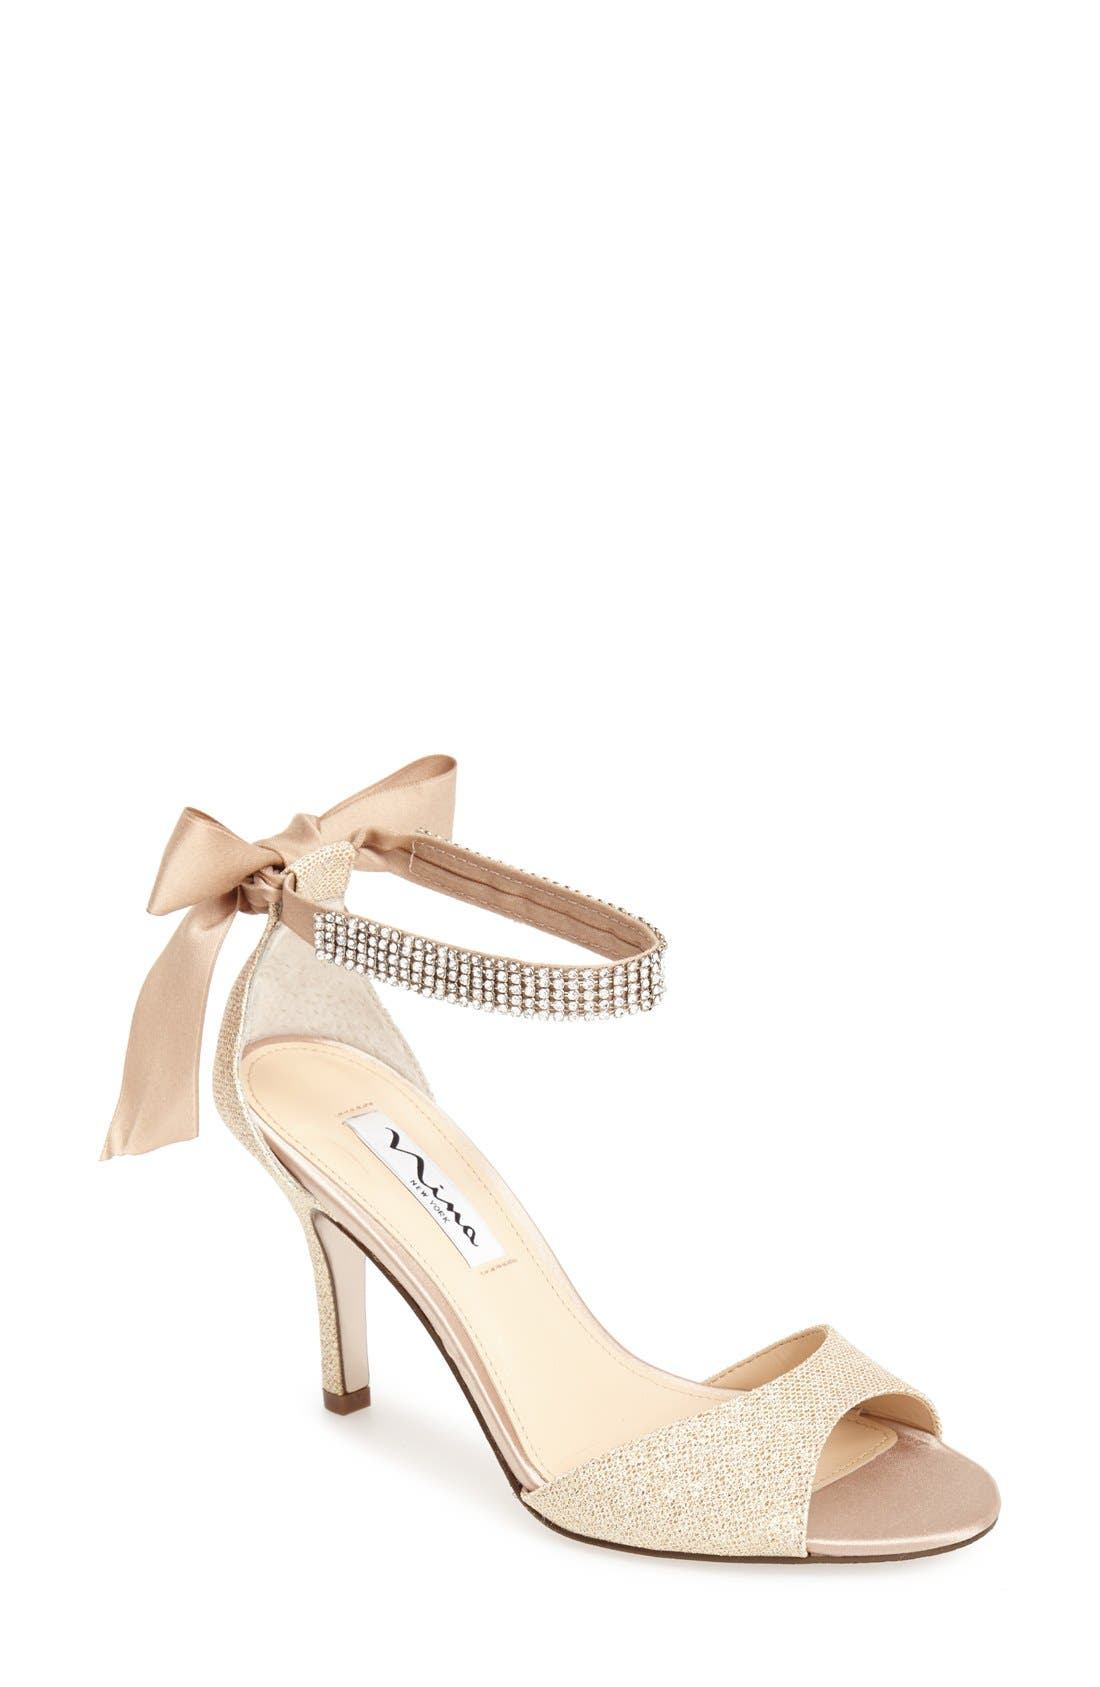 NINA 'Vinnie' Crystal Embellished Ankle Strap Sandal, Main, color, CHAMPAGNE GOLD